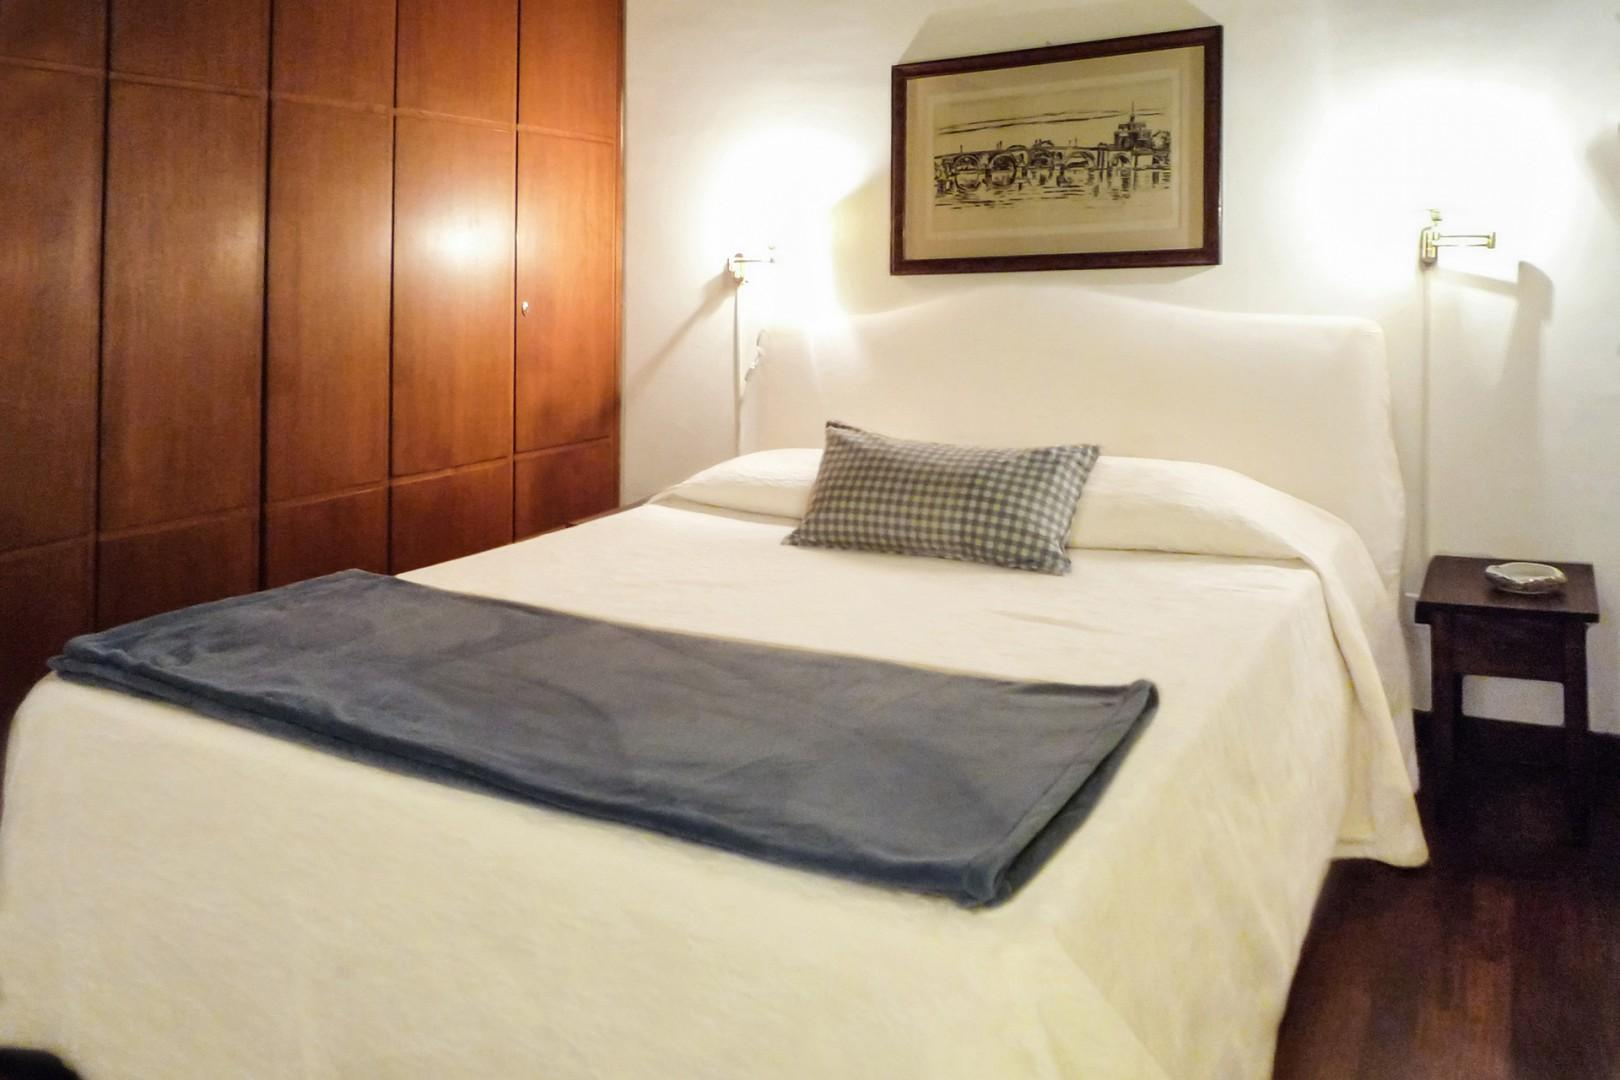 Comfortable bed with an etching of the Bridge of Angels over the Tiber river above it.